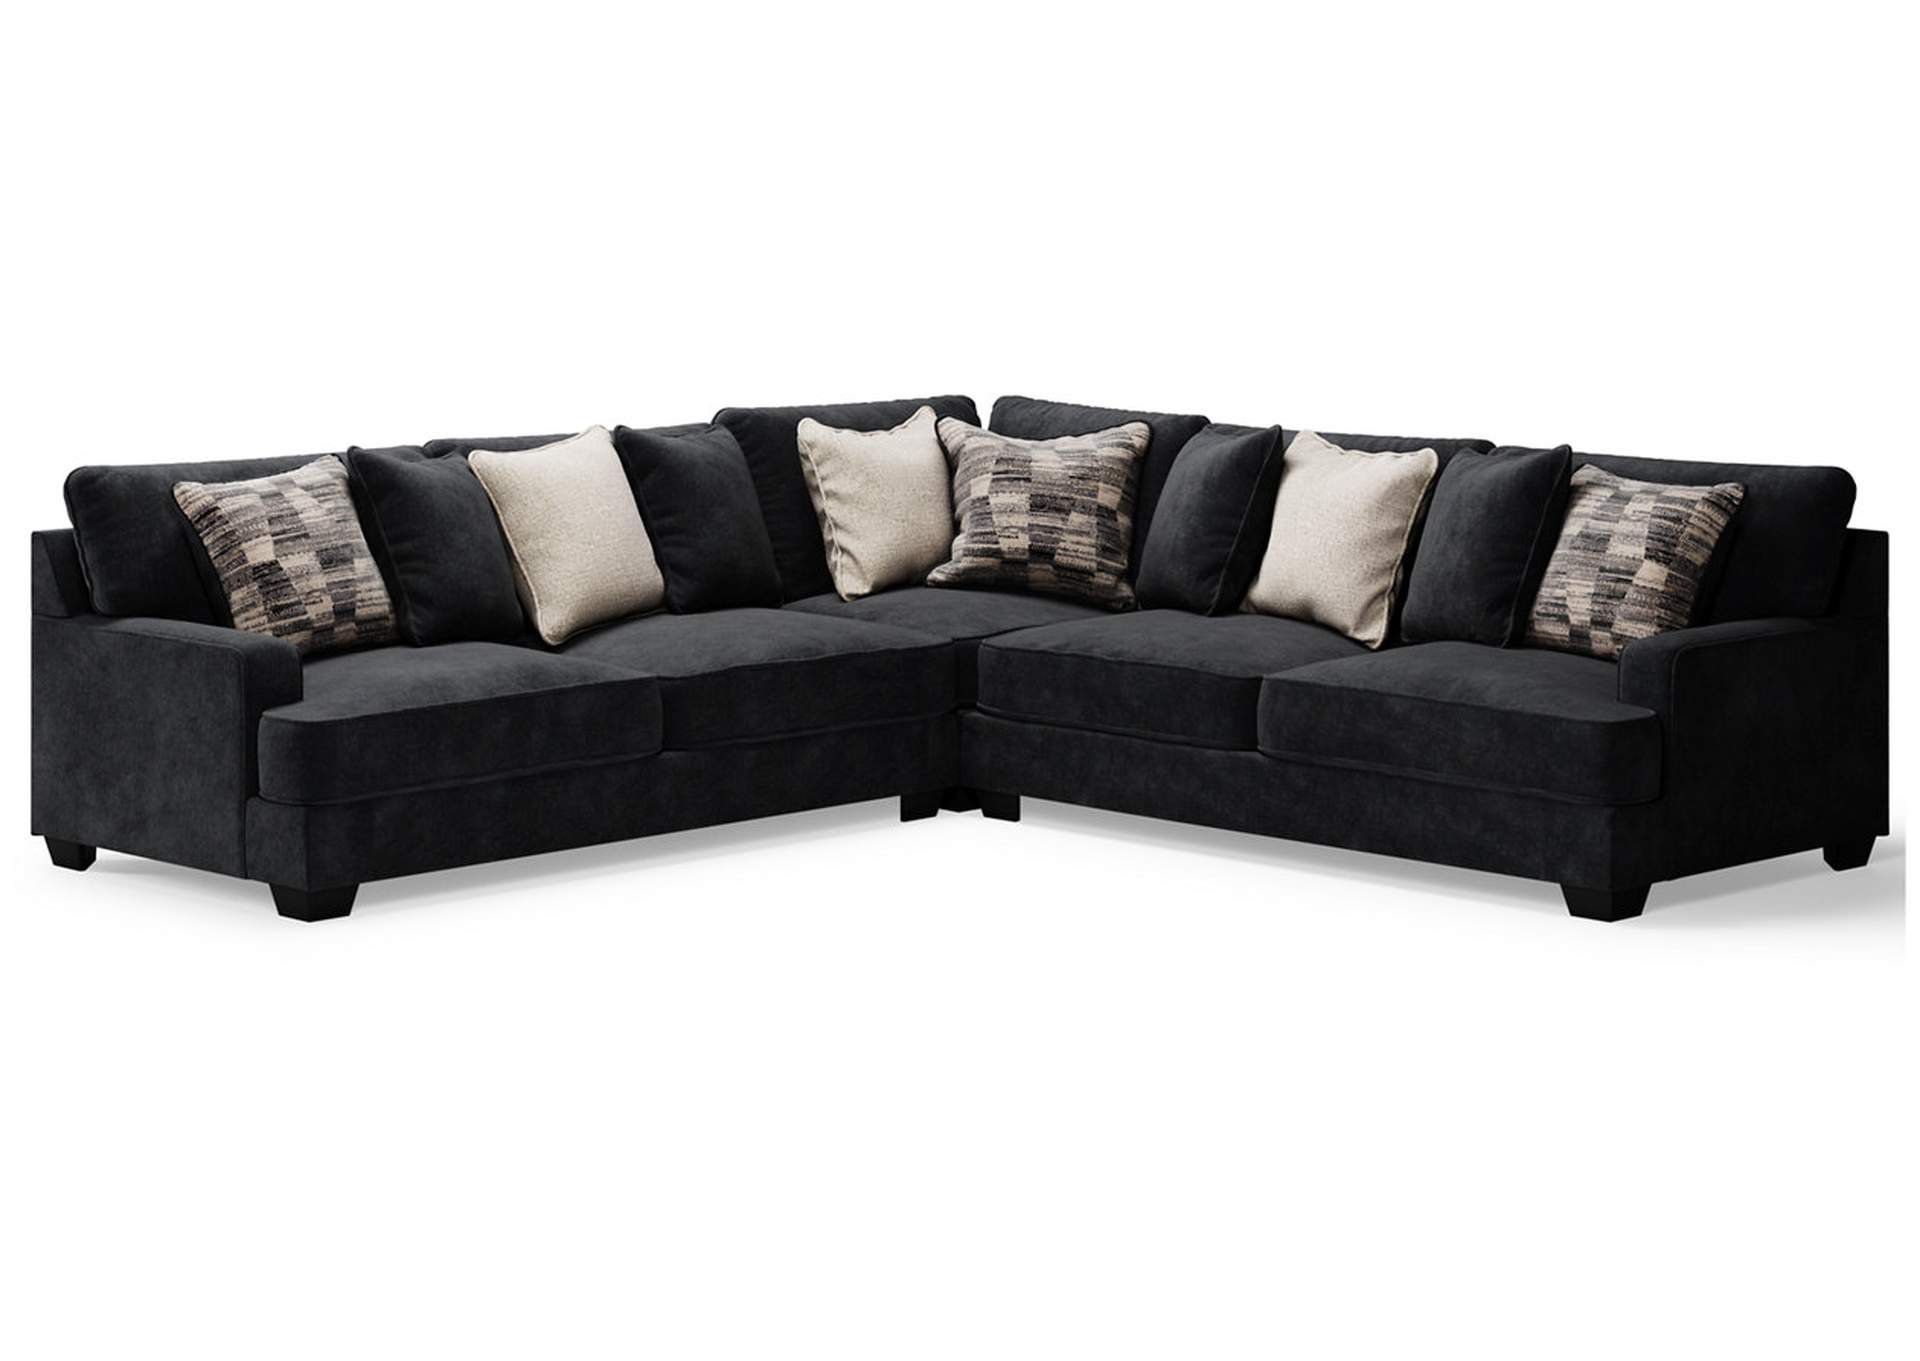 Lavernett 3-Piece Sectional,Signature Design By Ashley